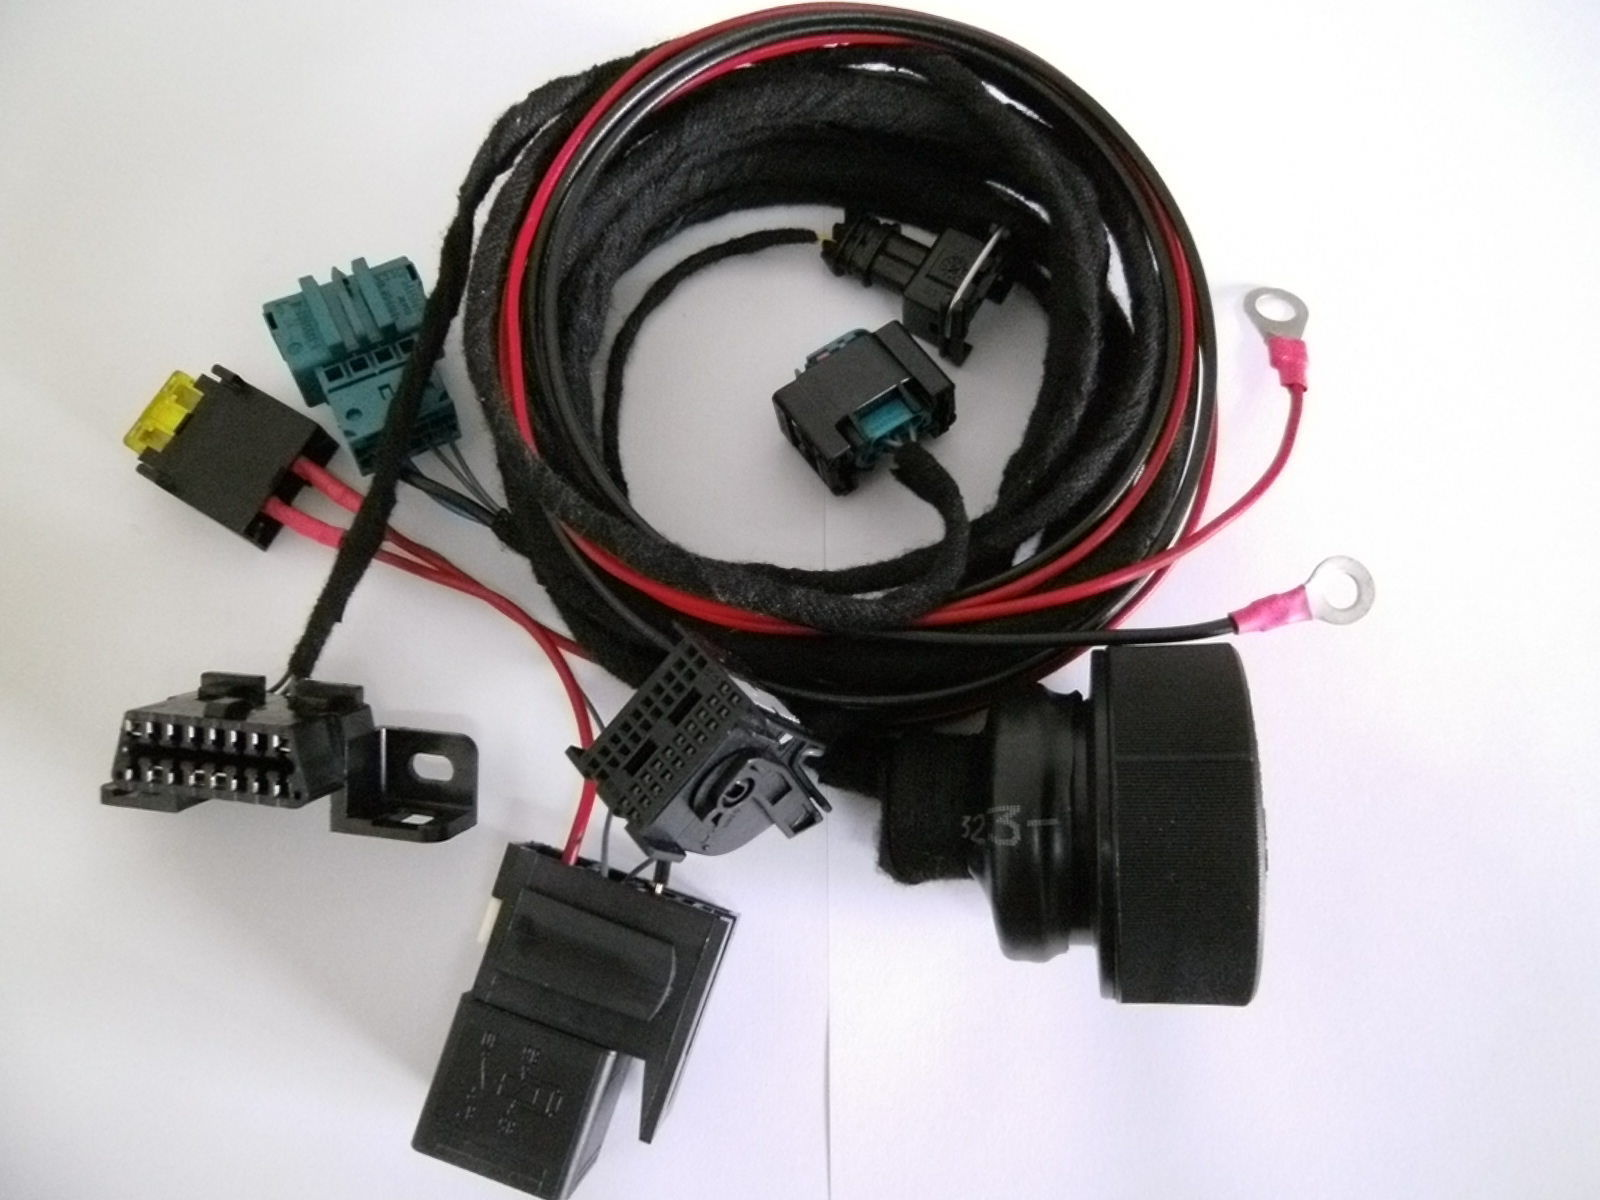 M52TU/M54/S54/S62 Wiring Loom Adapter (E30/E34/E36/Z3) - ... on fall protection harness, nakamichi harness, amp bypass harness, safety harness, alpine stereo harness, pony harness, suspension harness, pet harness, obd0 to obd1 conversion harness, oxygen sensor extension harness, battery harness, electrical harness, engine harness, radio harness, maxi-seal harness, cable harness, dog harness,